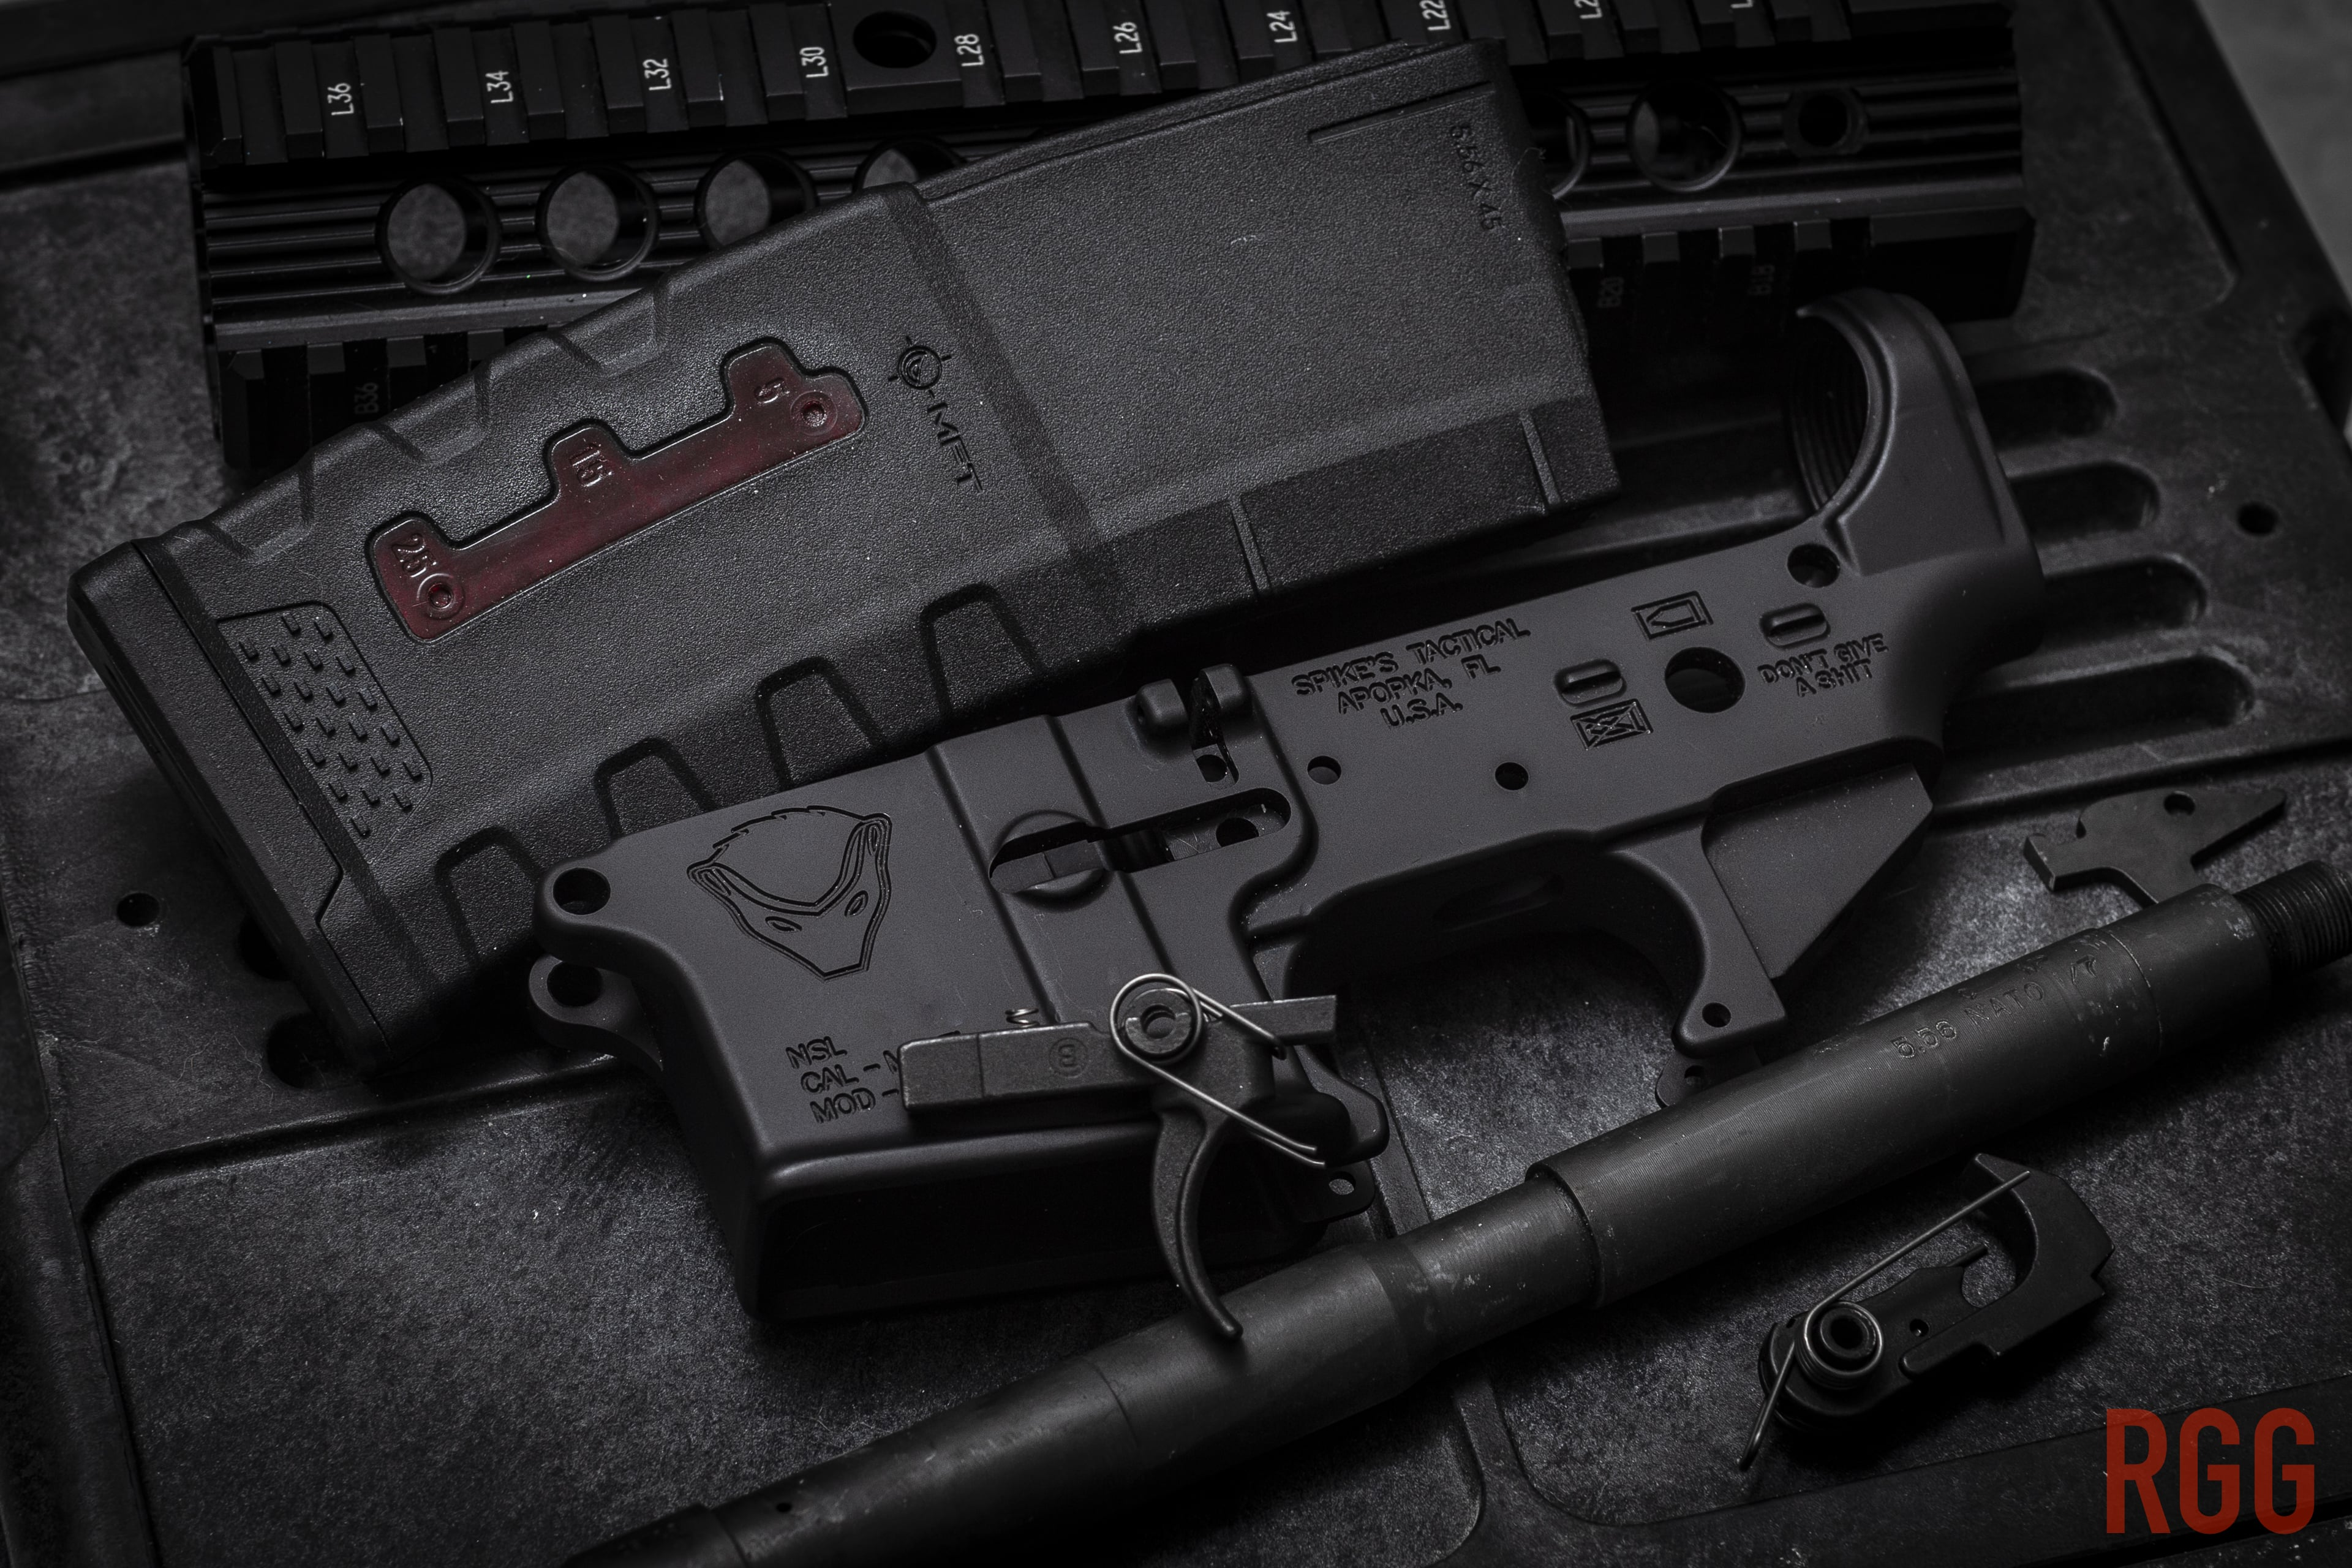 Some components that make up an AR-15 rifle.